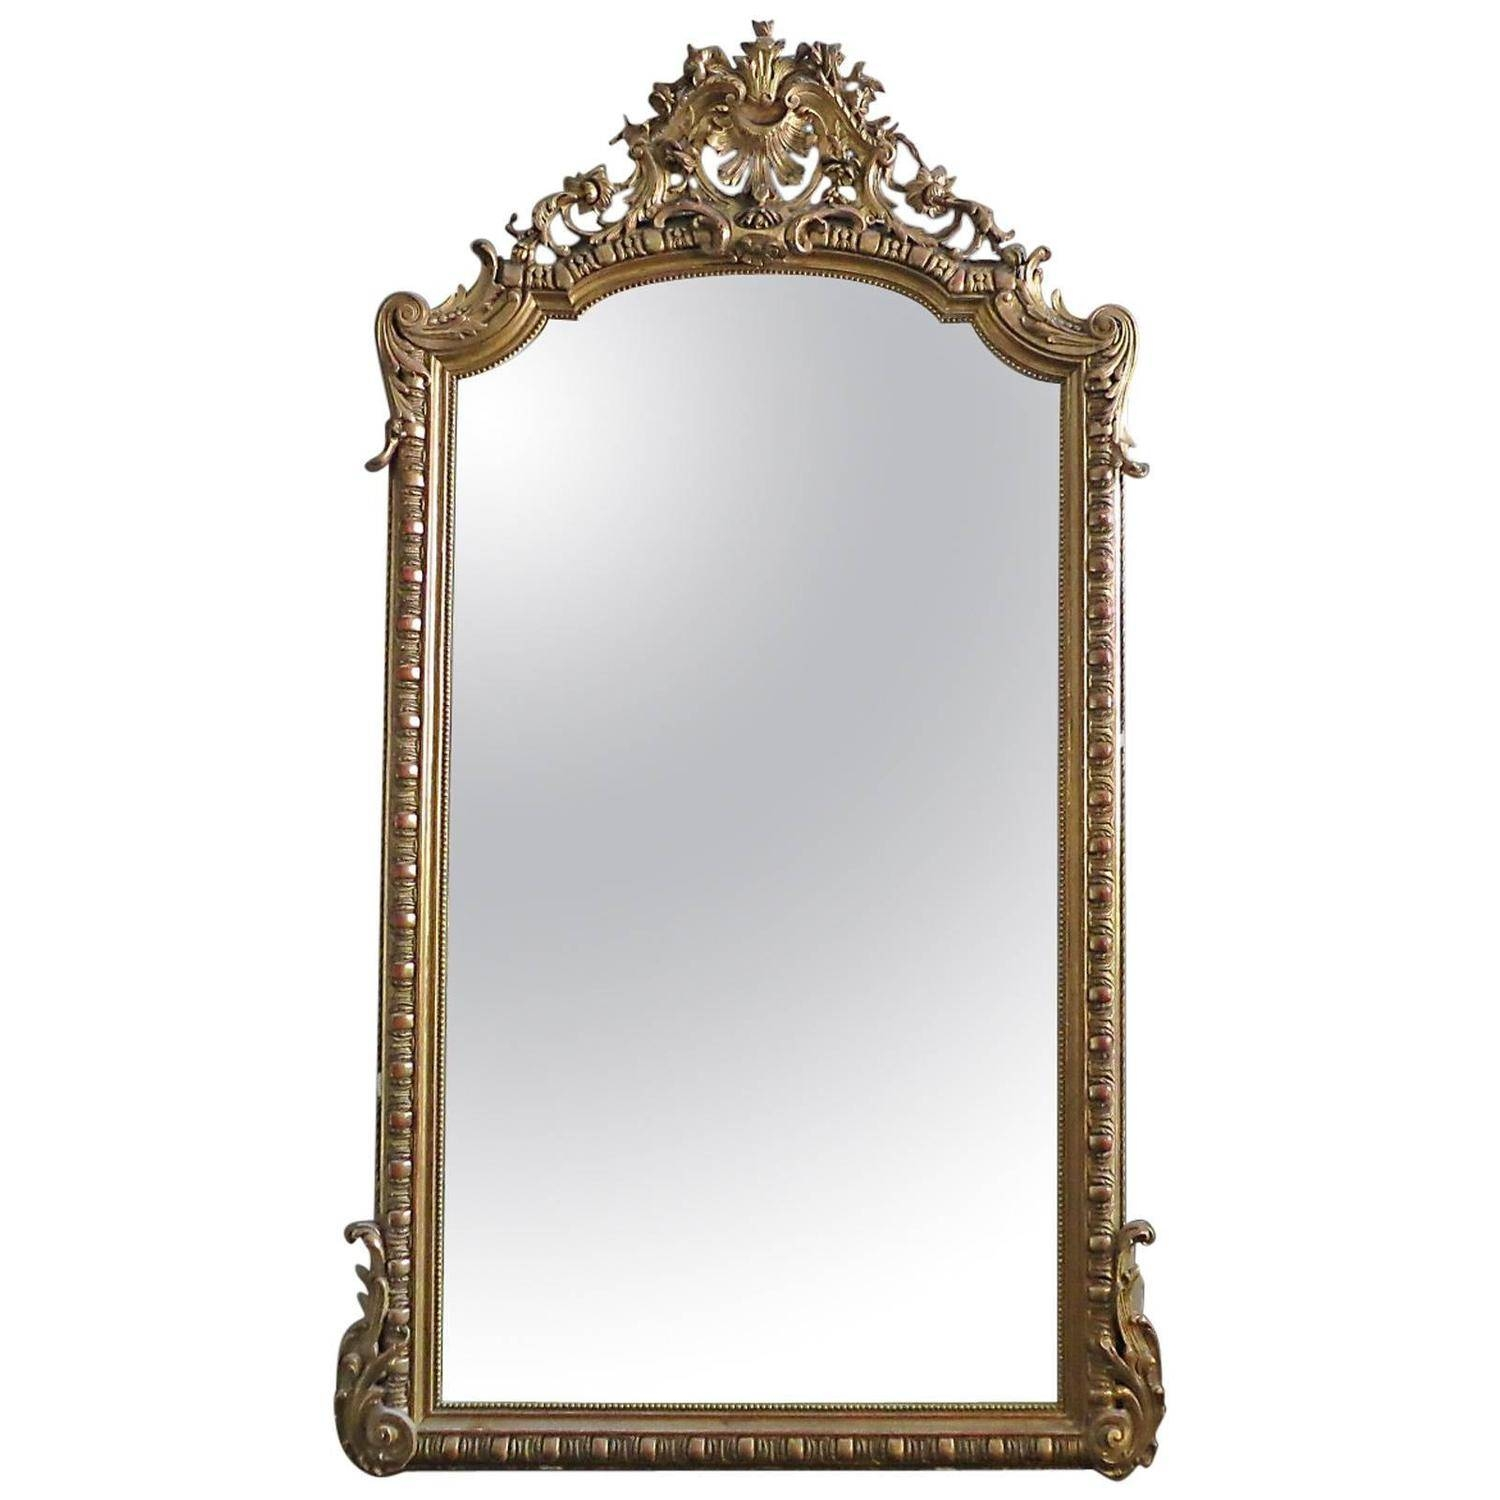 Large Antique French Gold Gilt Mirror At 1Stdibs for Antique Gold Mirrors French (Image 25 of 25)